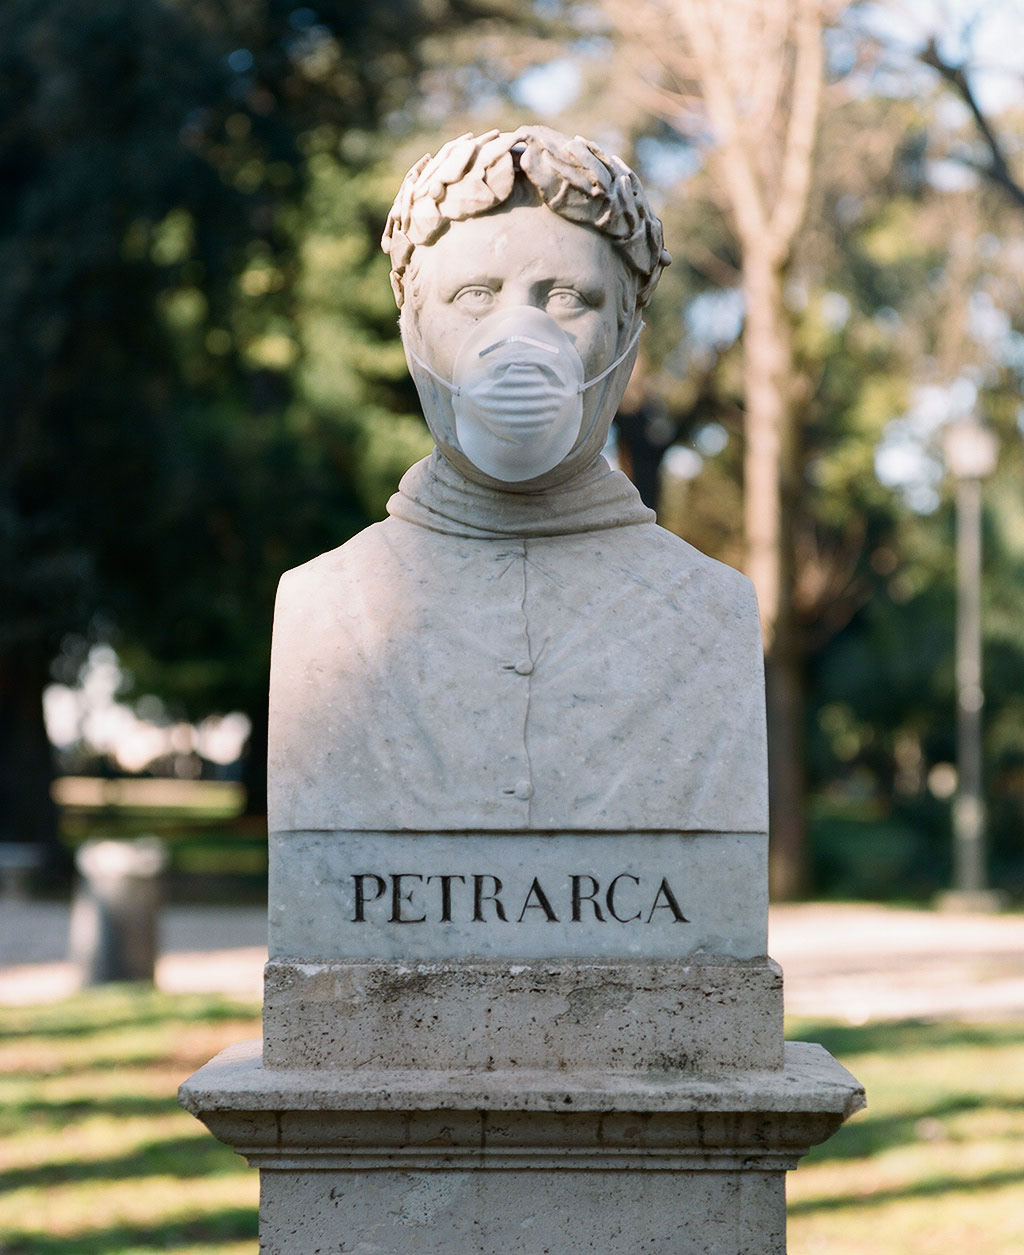 Bust of poet Petrarch (1304-1374) at Villa Borghese gardens, Rome. Photo © Federico Pestilli.